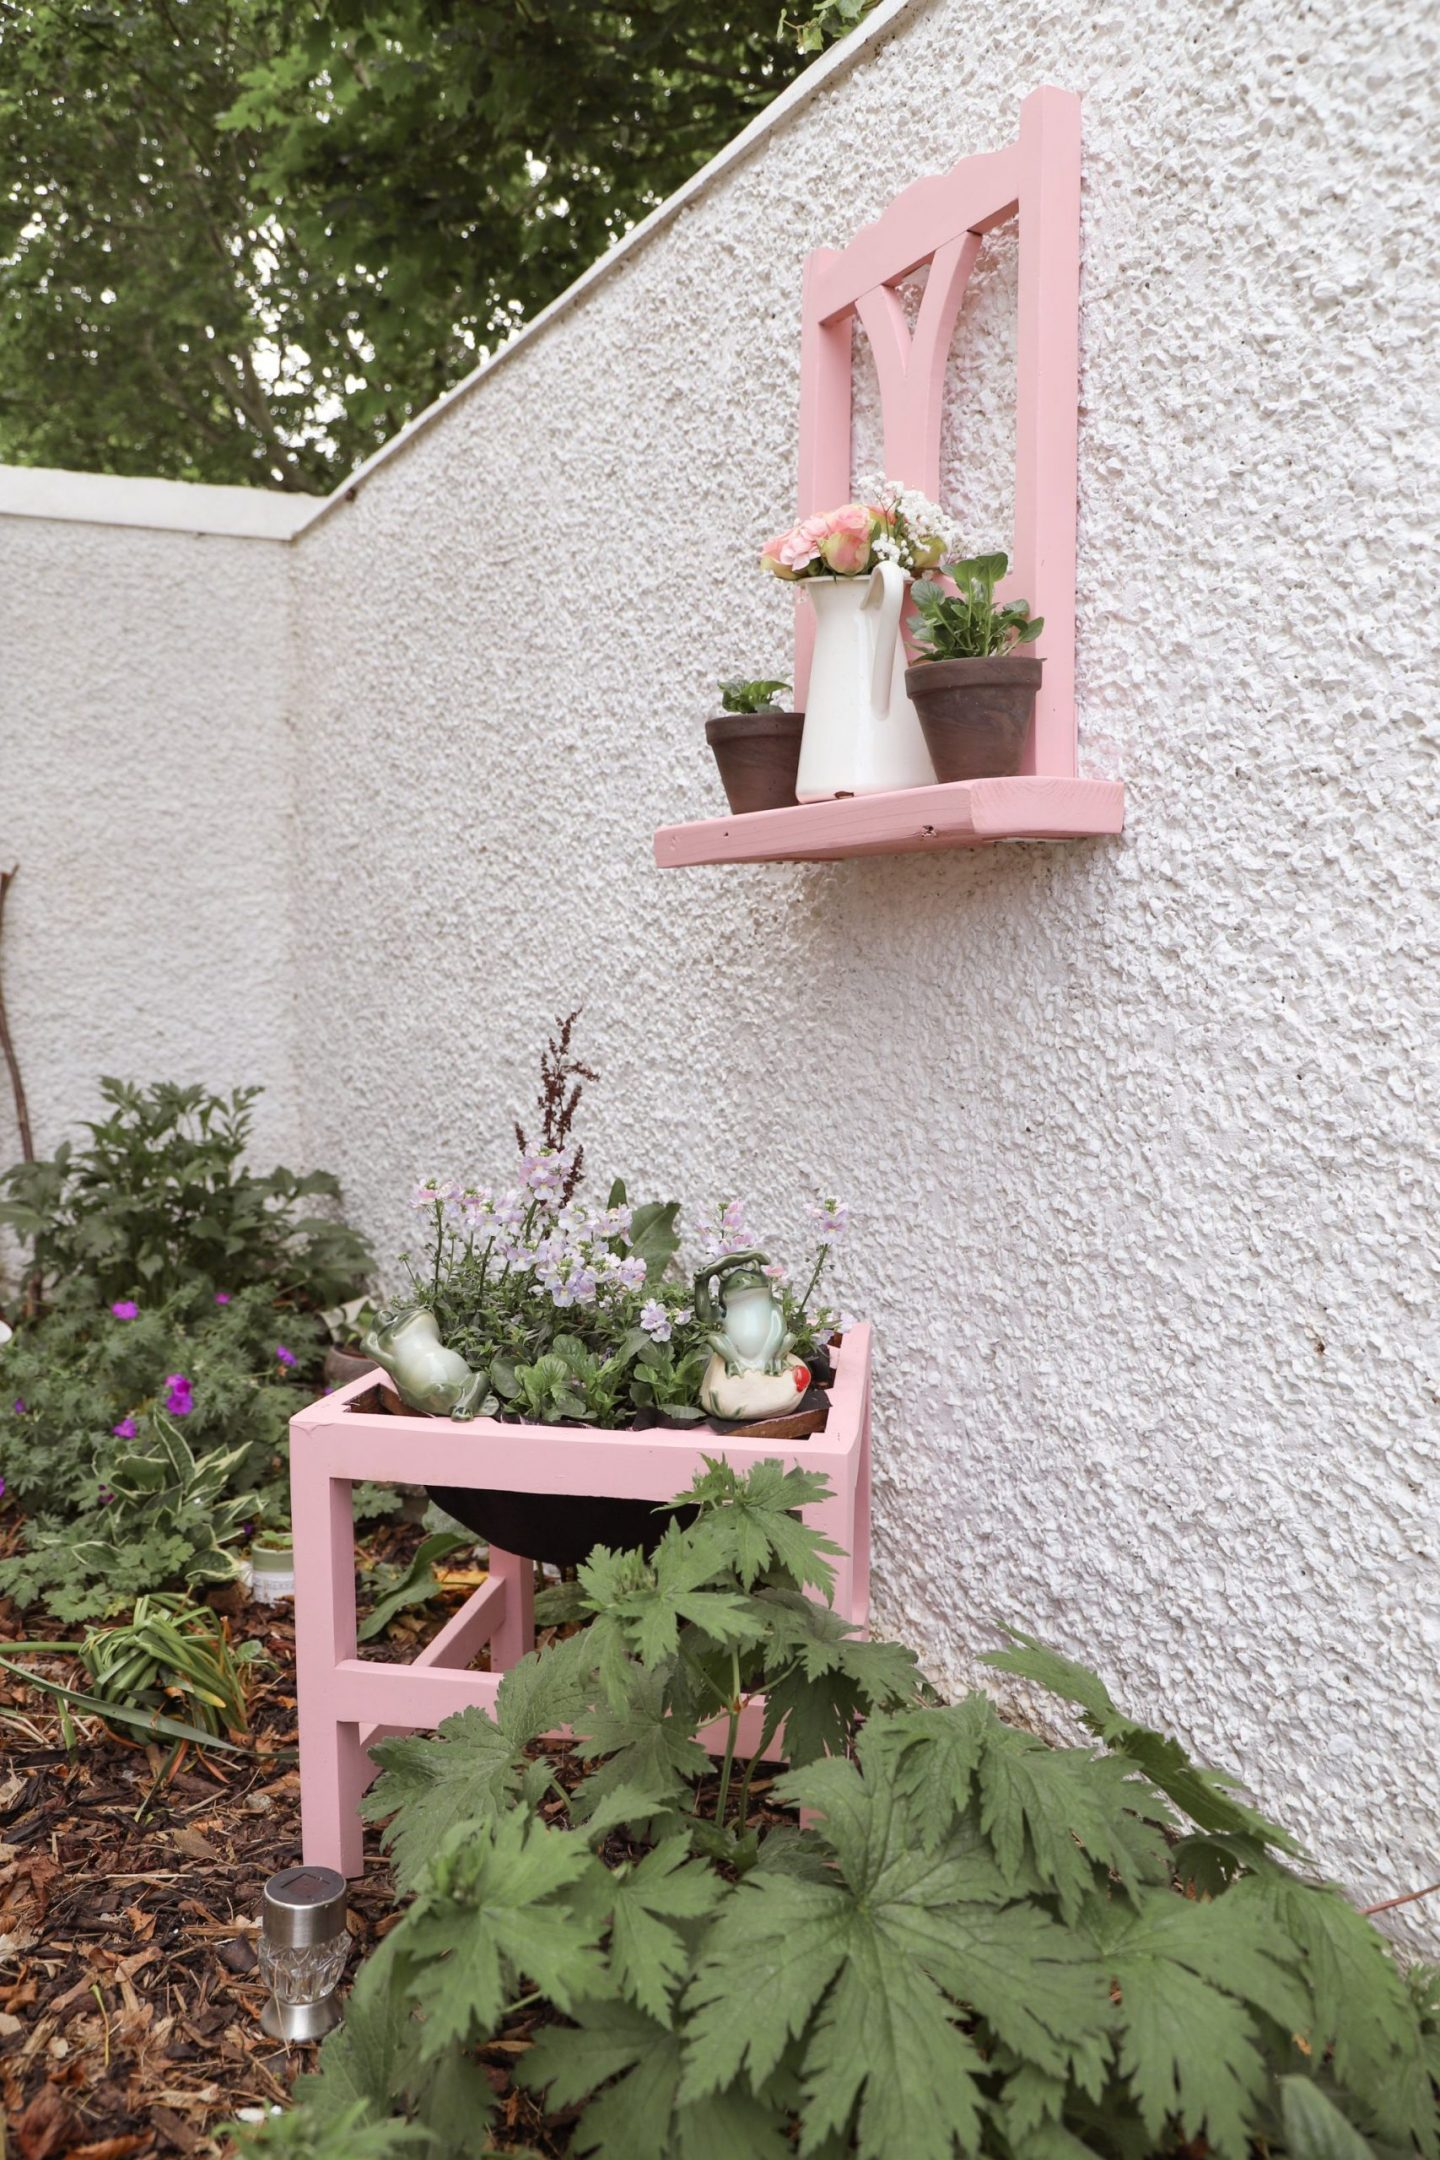 How to make a garden planter from a chair